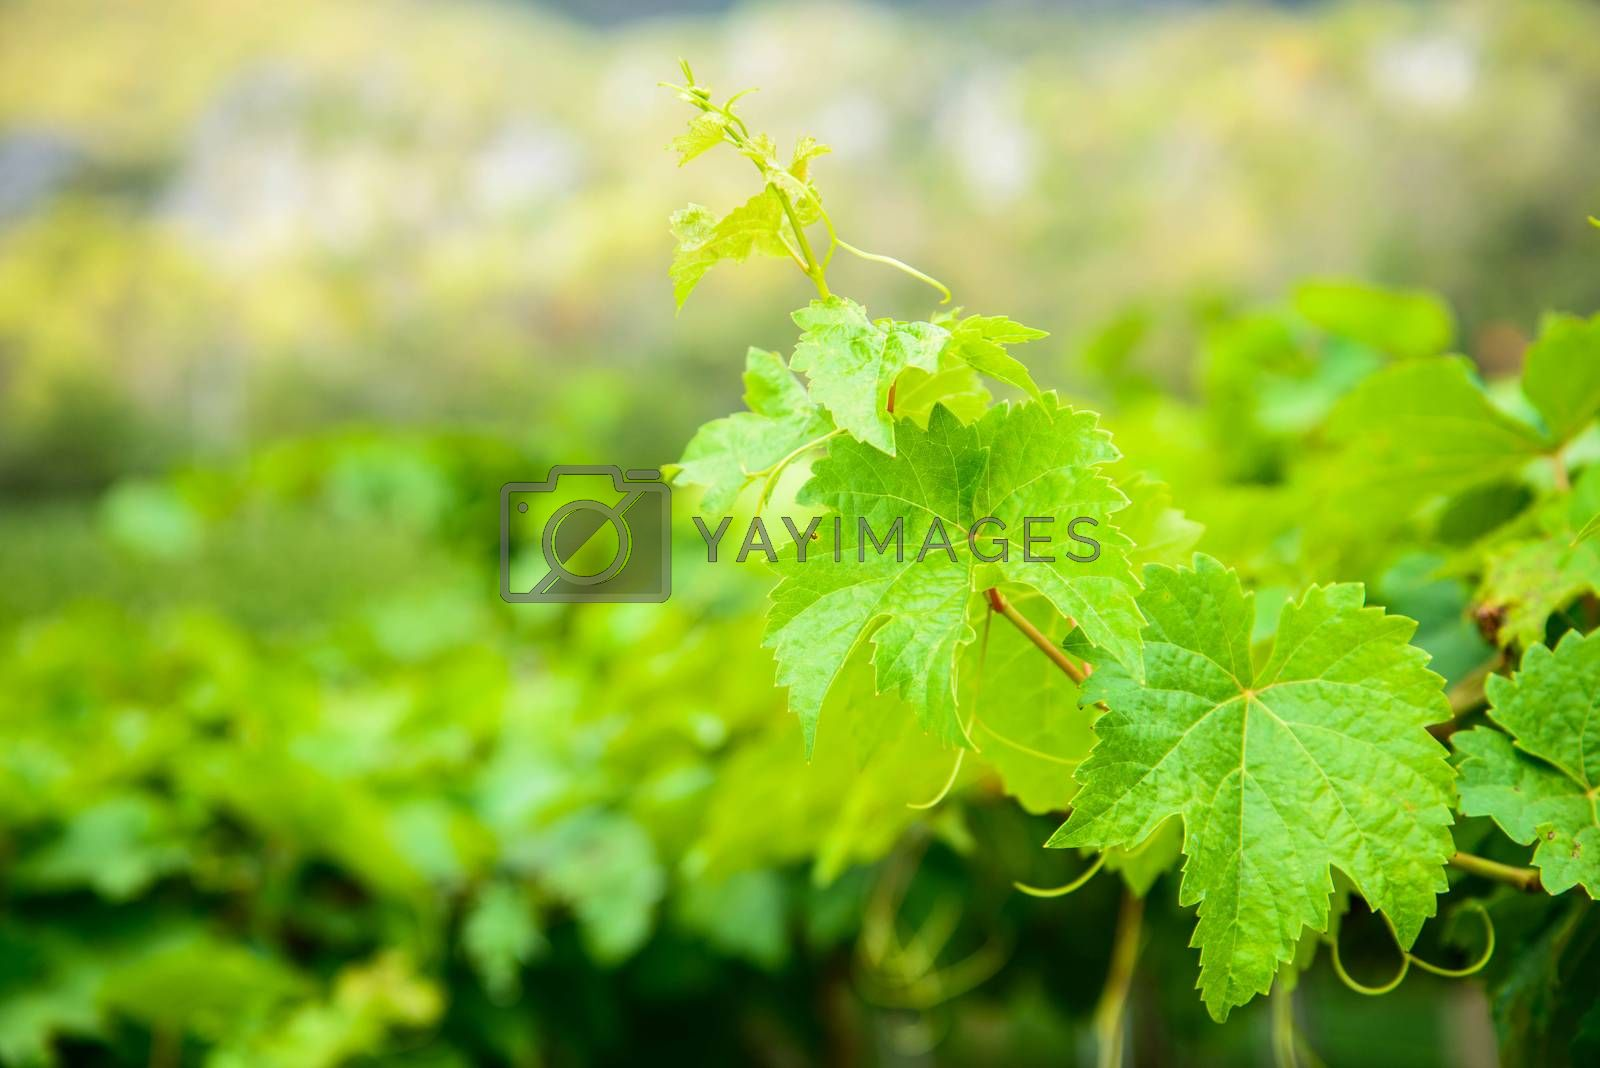 Bunch of green grapes leaves. by jakgree